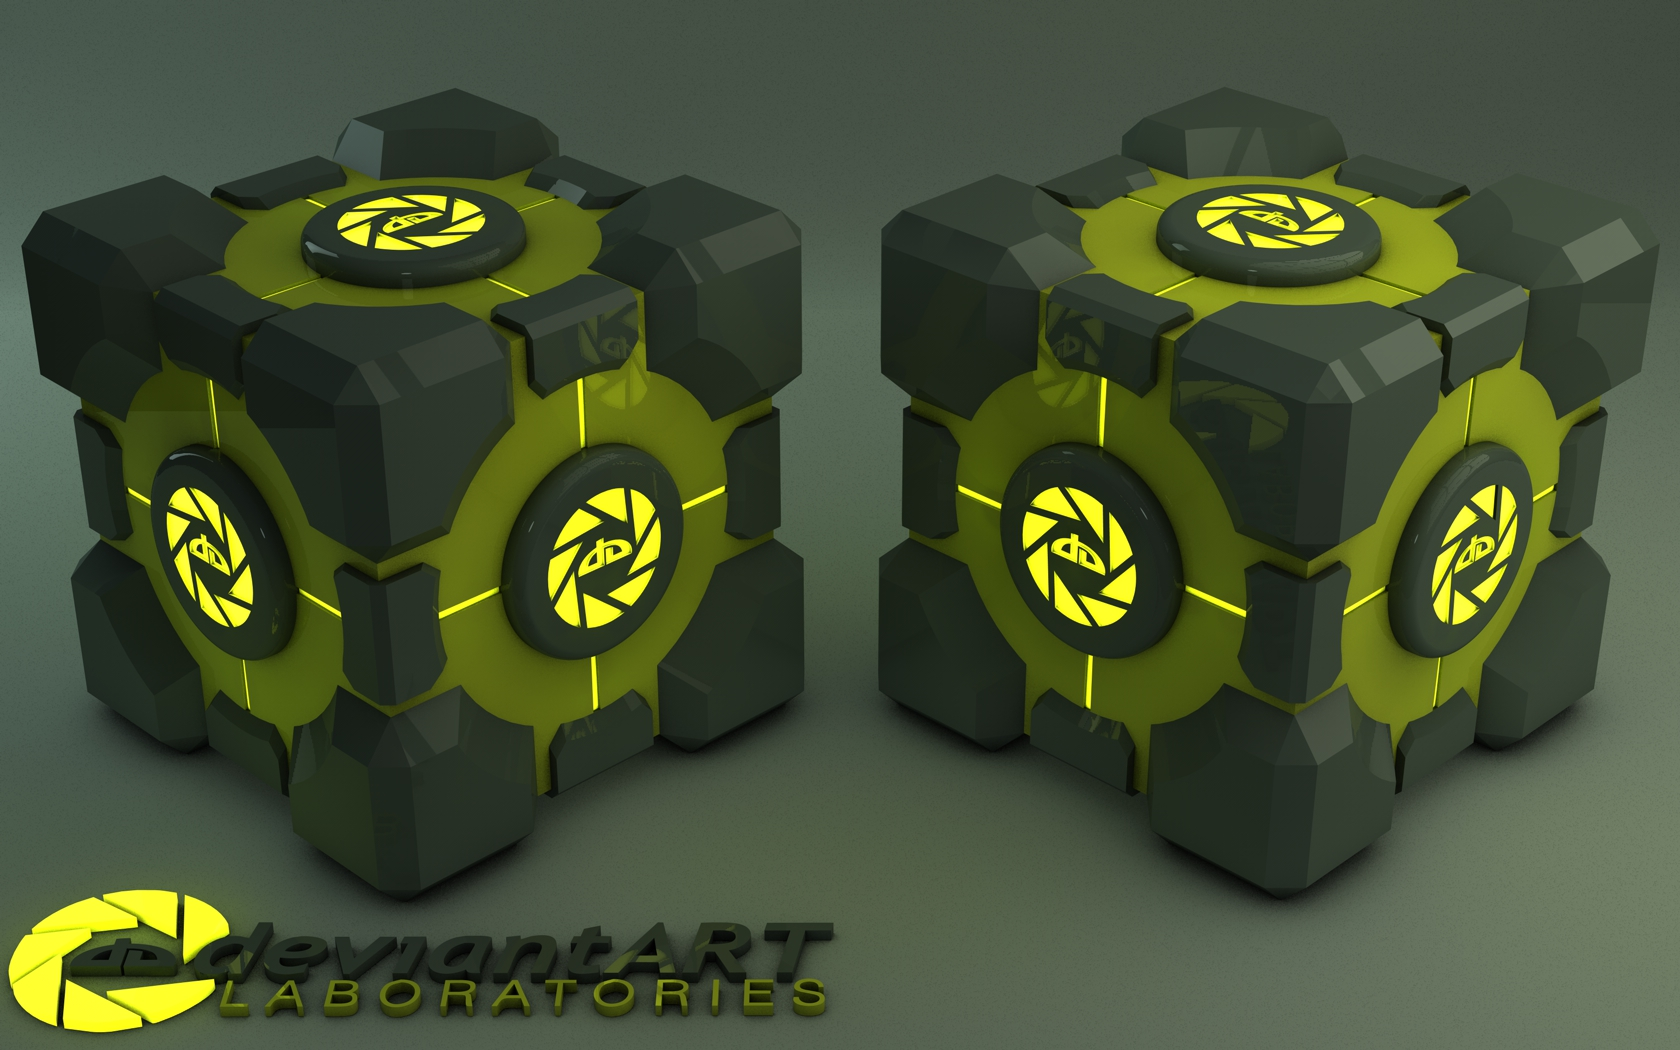 ... Glowing deviantART Weighted Storage Cube by Dracu-Teufel666 & Glowing deviantART Weighted Storage Cube by Dracu-Teufel666 on ...